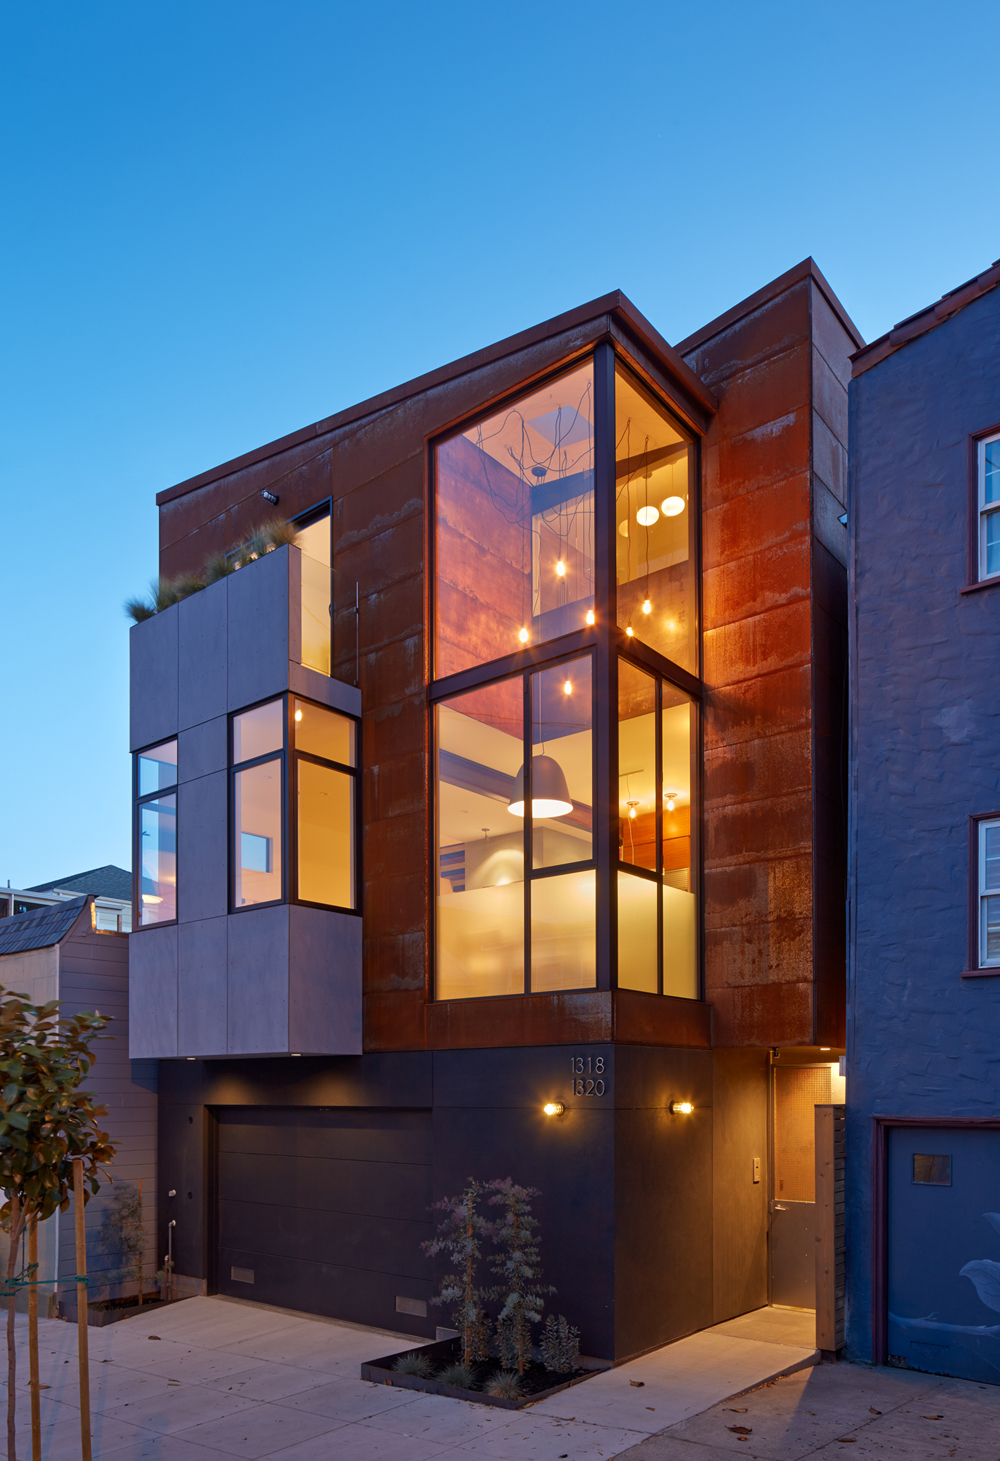 Steelhouse1: a new, ground-up three story home built at the front of the lot.